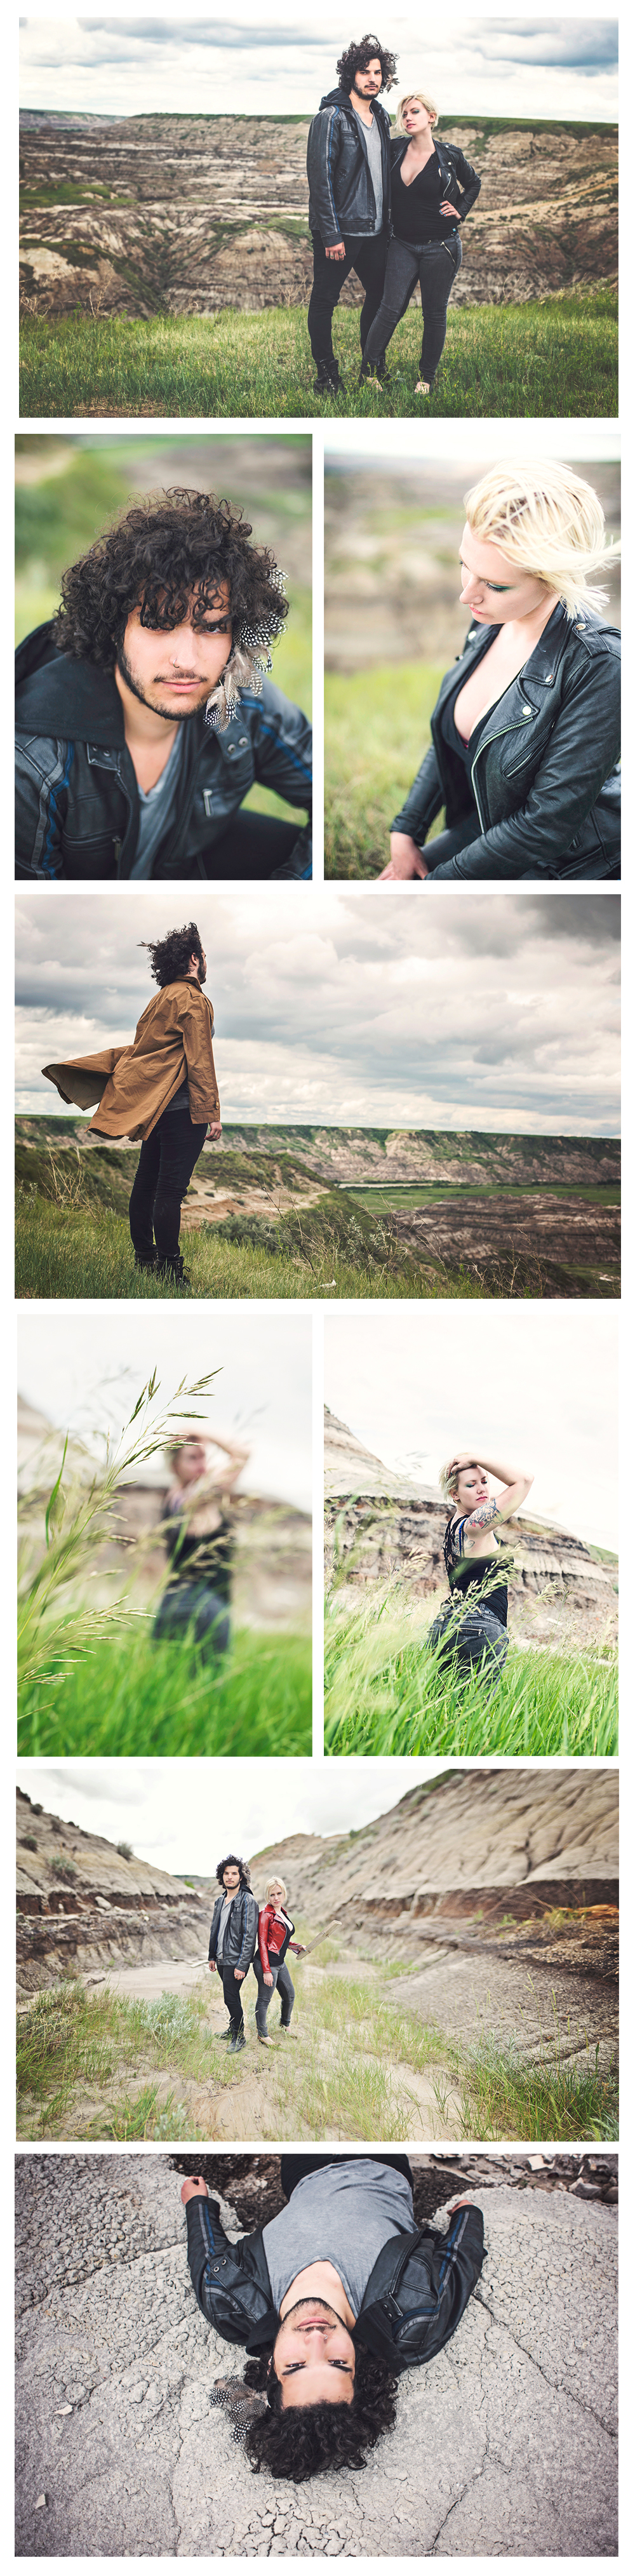 Siobhan Young Photography Drumheller (2)